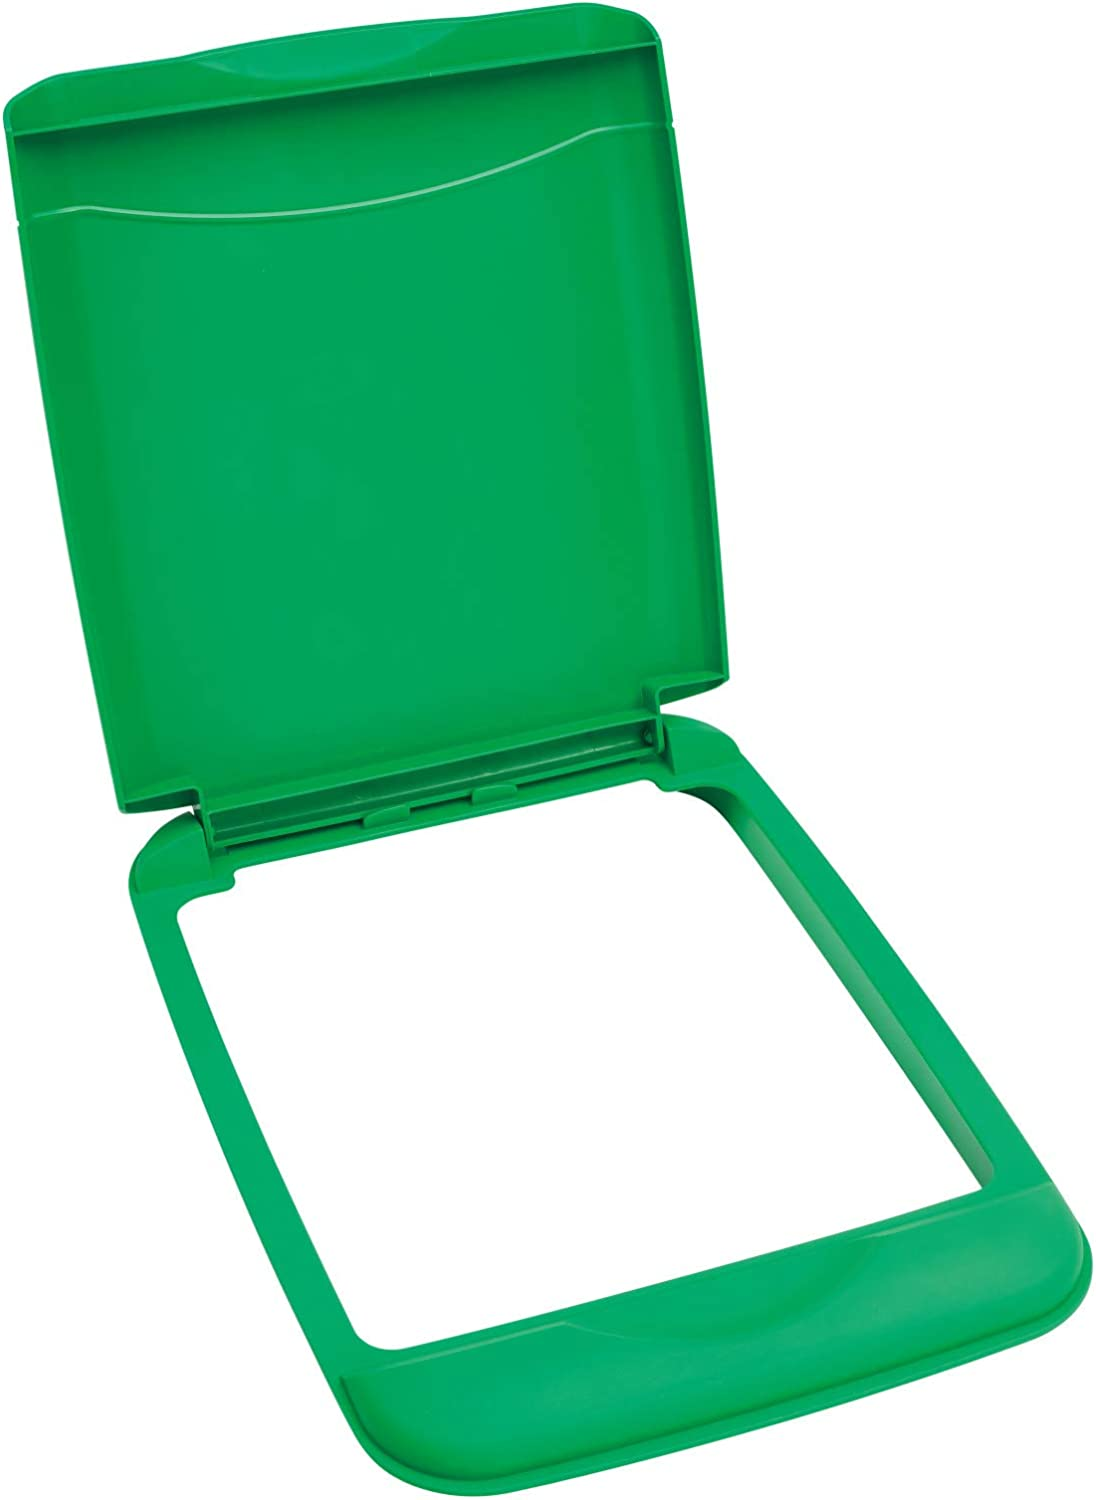 Rev-A-Shelf RV-35-LID-G-1 35-Quart Polymer Trash Waste Recycling Container Replacement Lid, Green